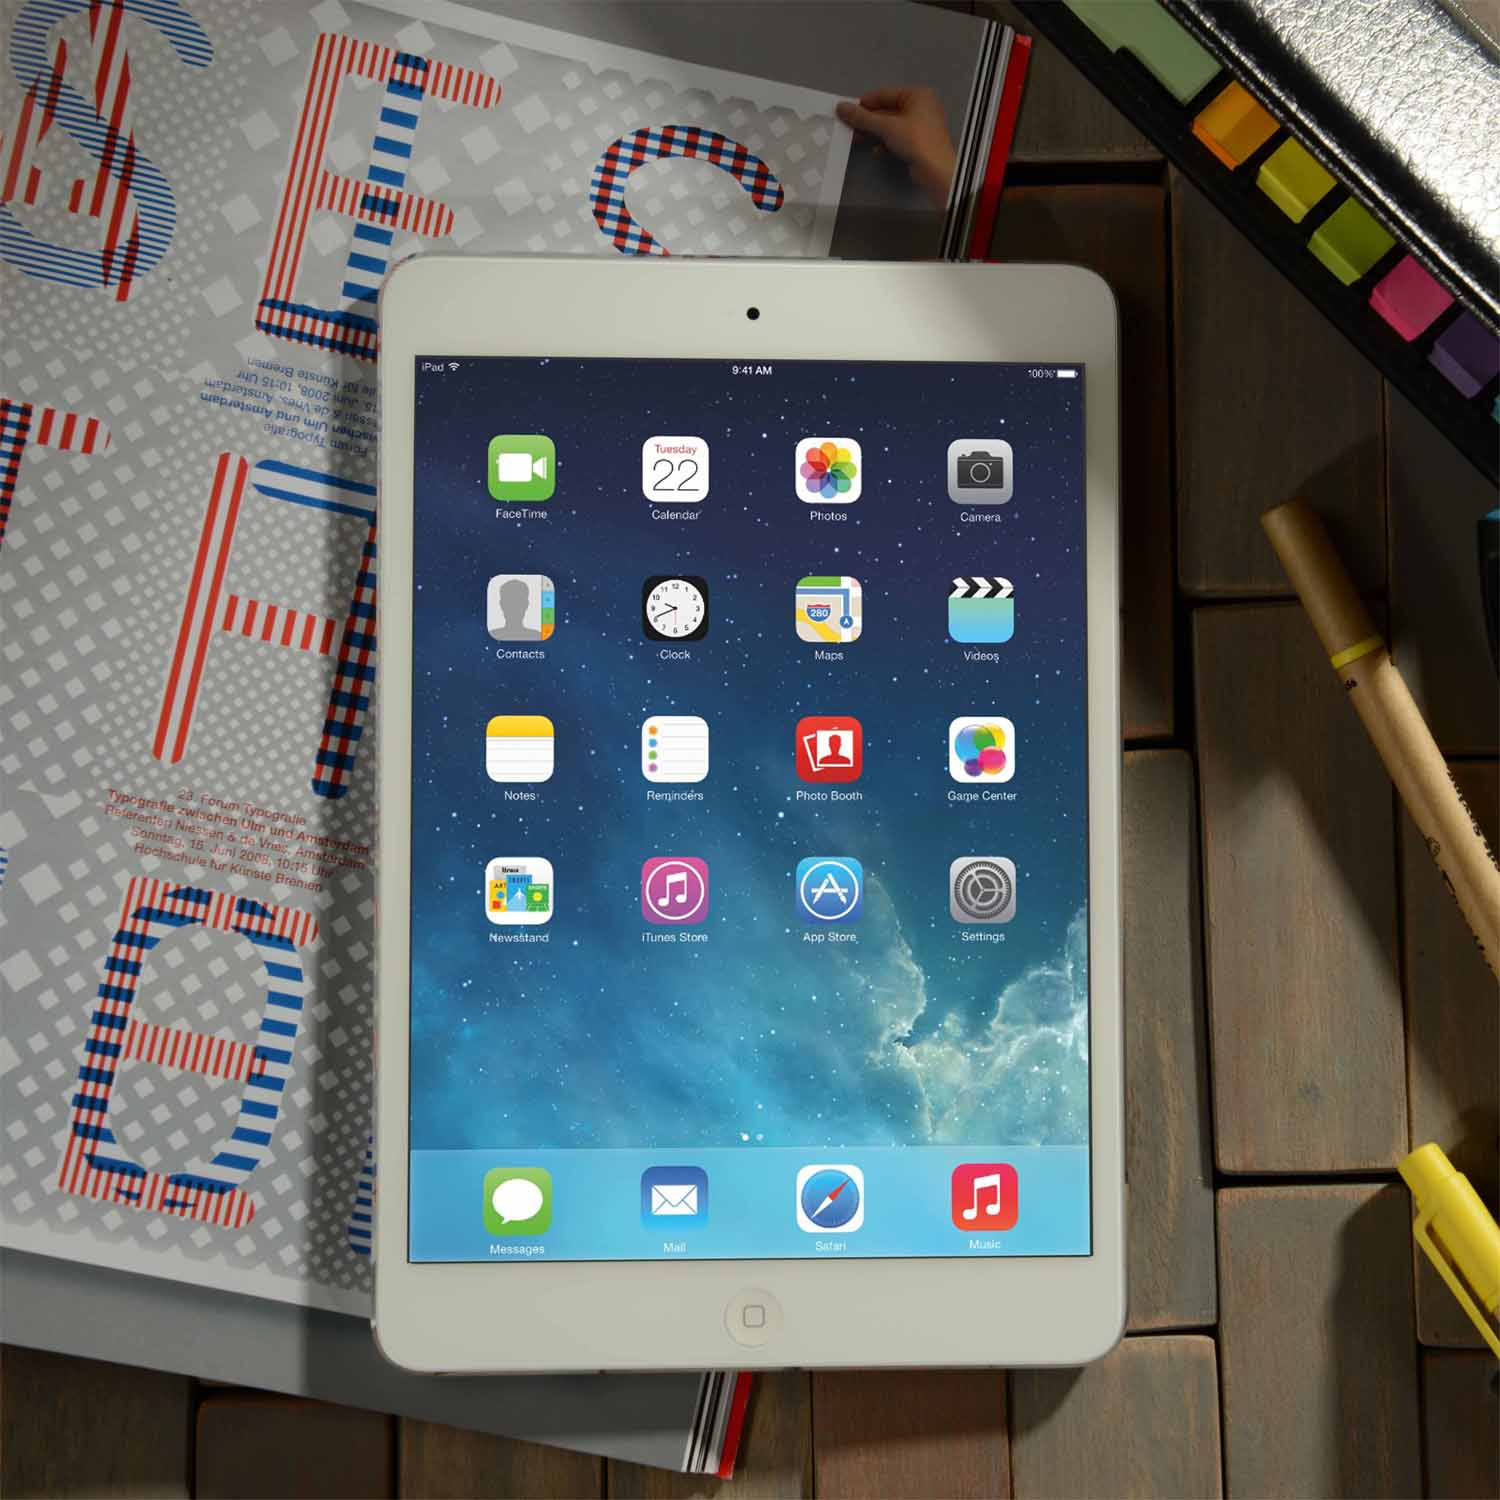 iPad Mini 3 Wifi in 16gb (P17,800), 64gb (P22,000), 128gb (P26,400)